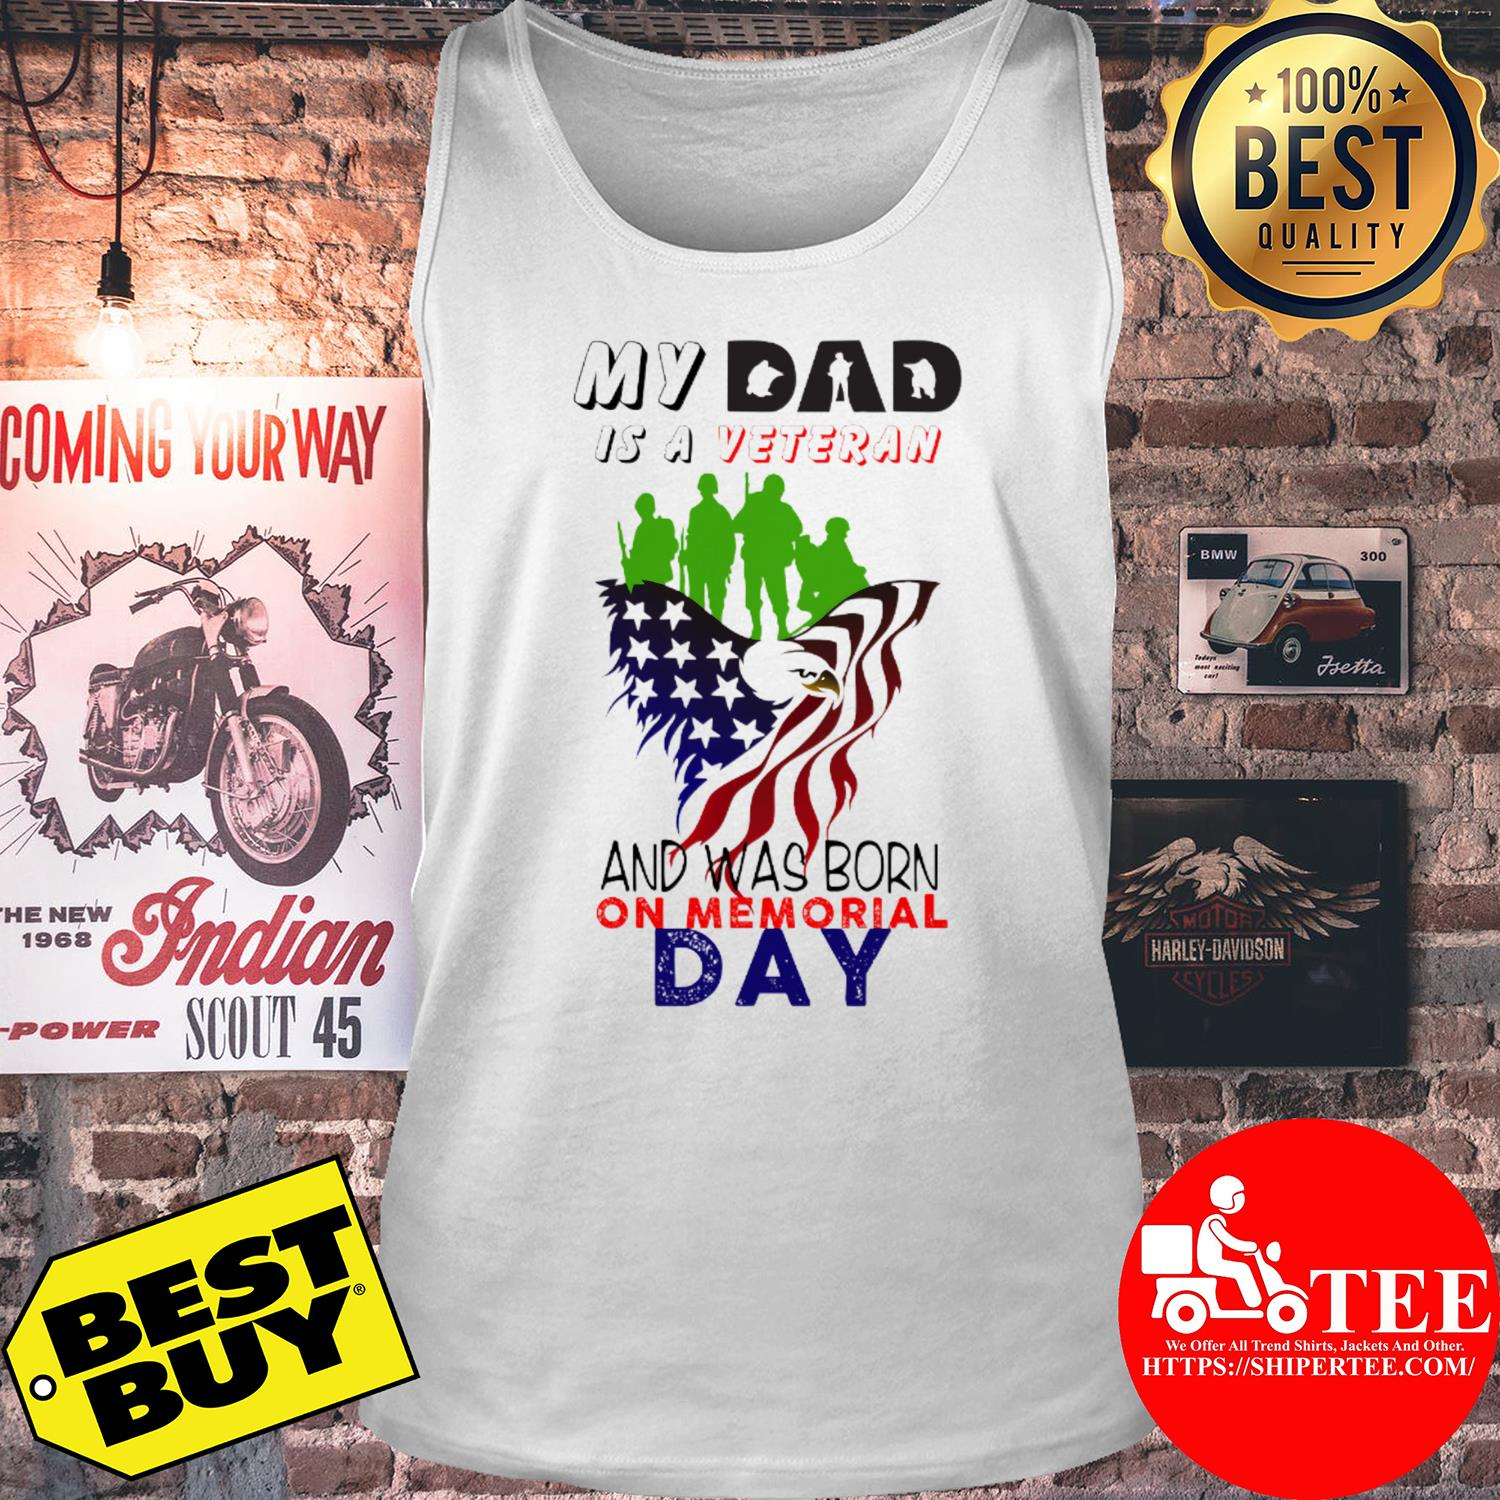 My dad is a veteran and was born on memorial day tank top